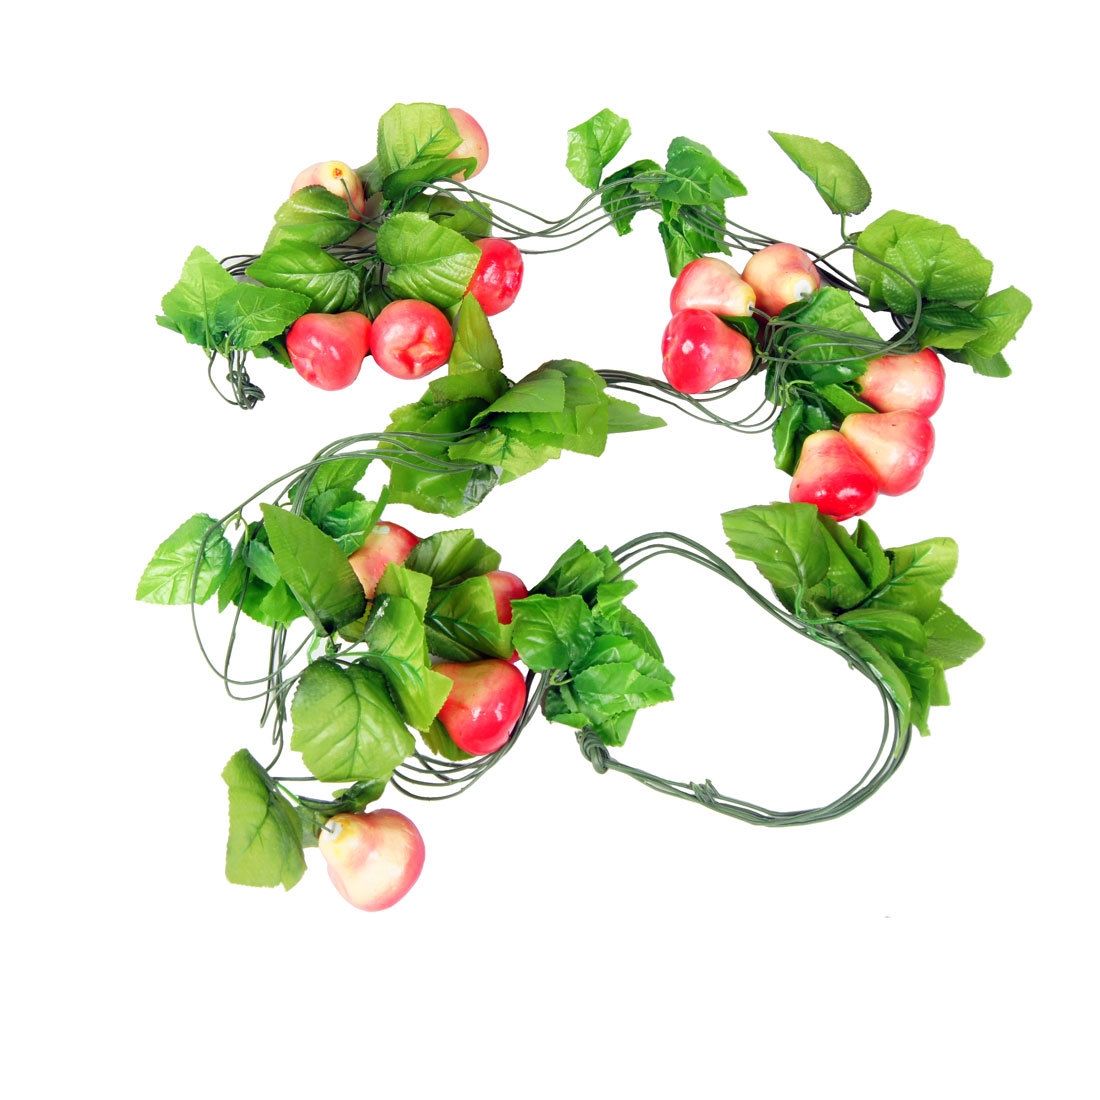 5 Pcs Megenta Wax Apple Green Leaf Wall Decorative Hanging Vine 2.4M